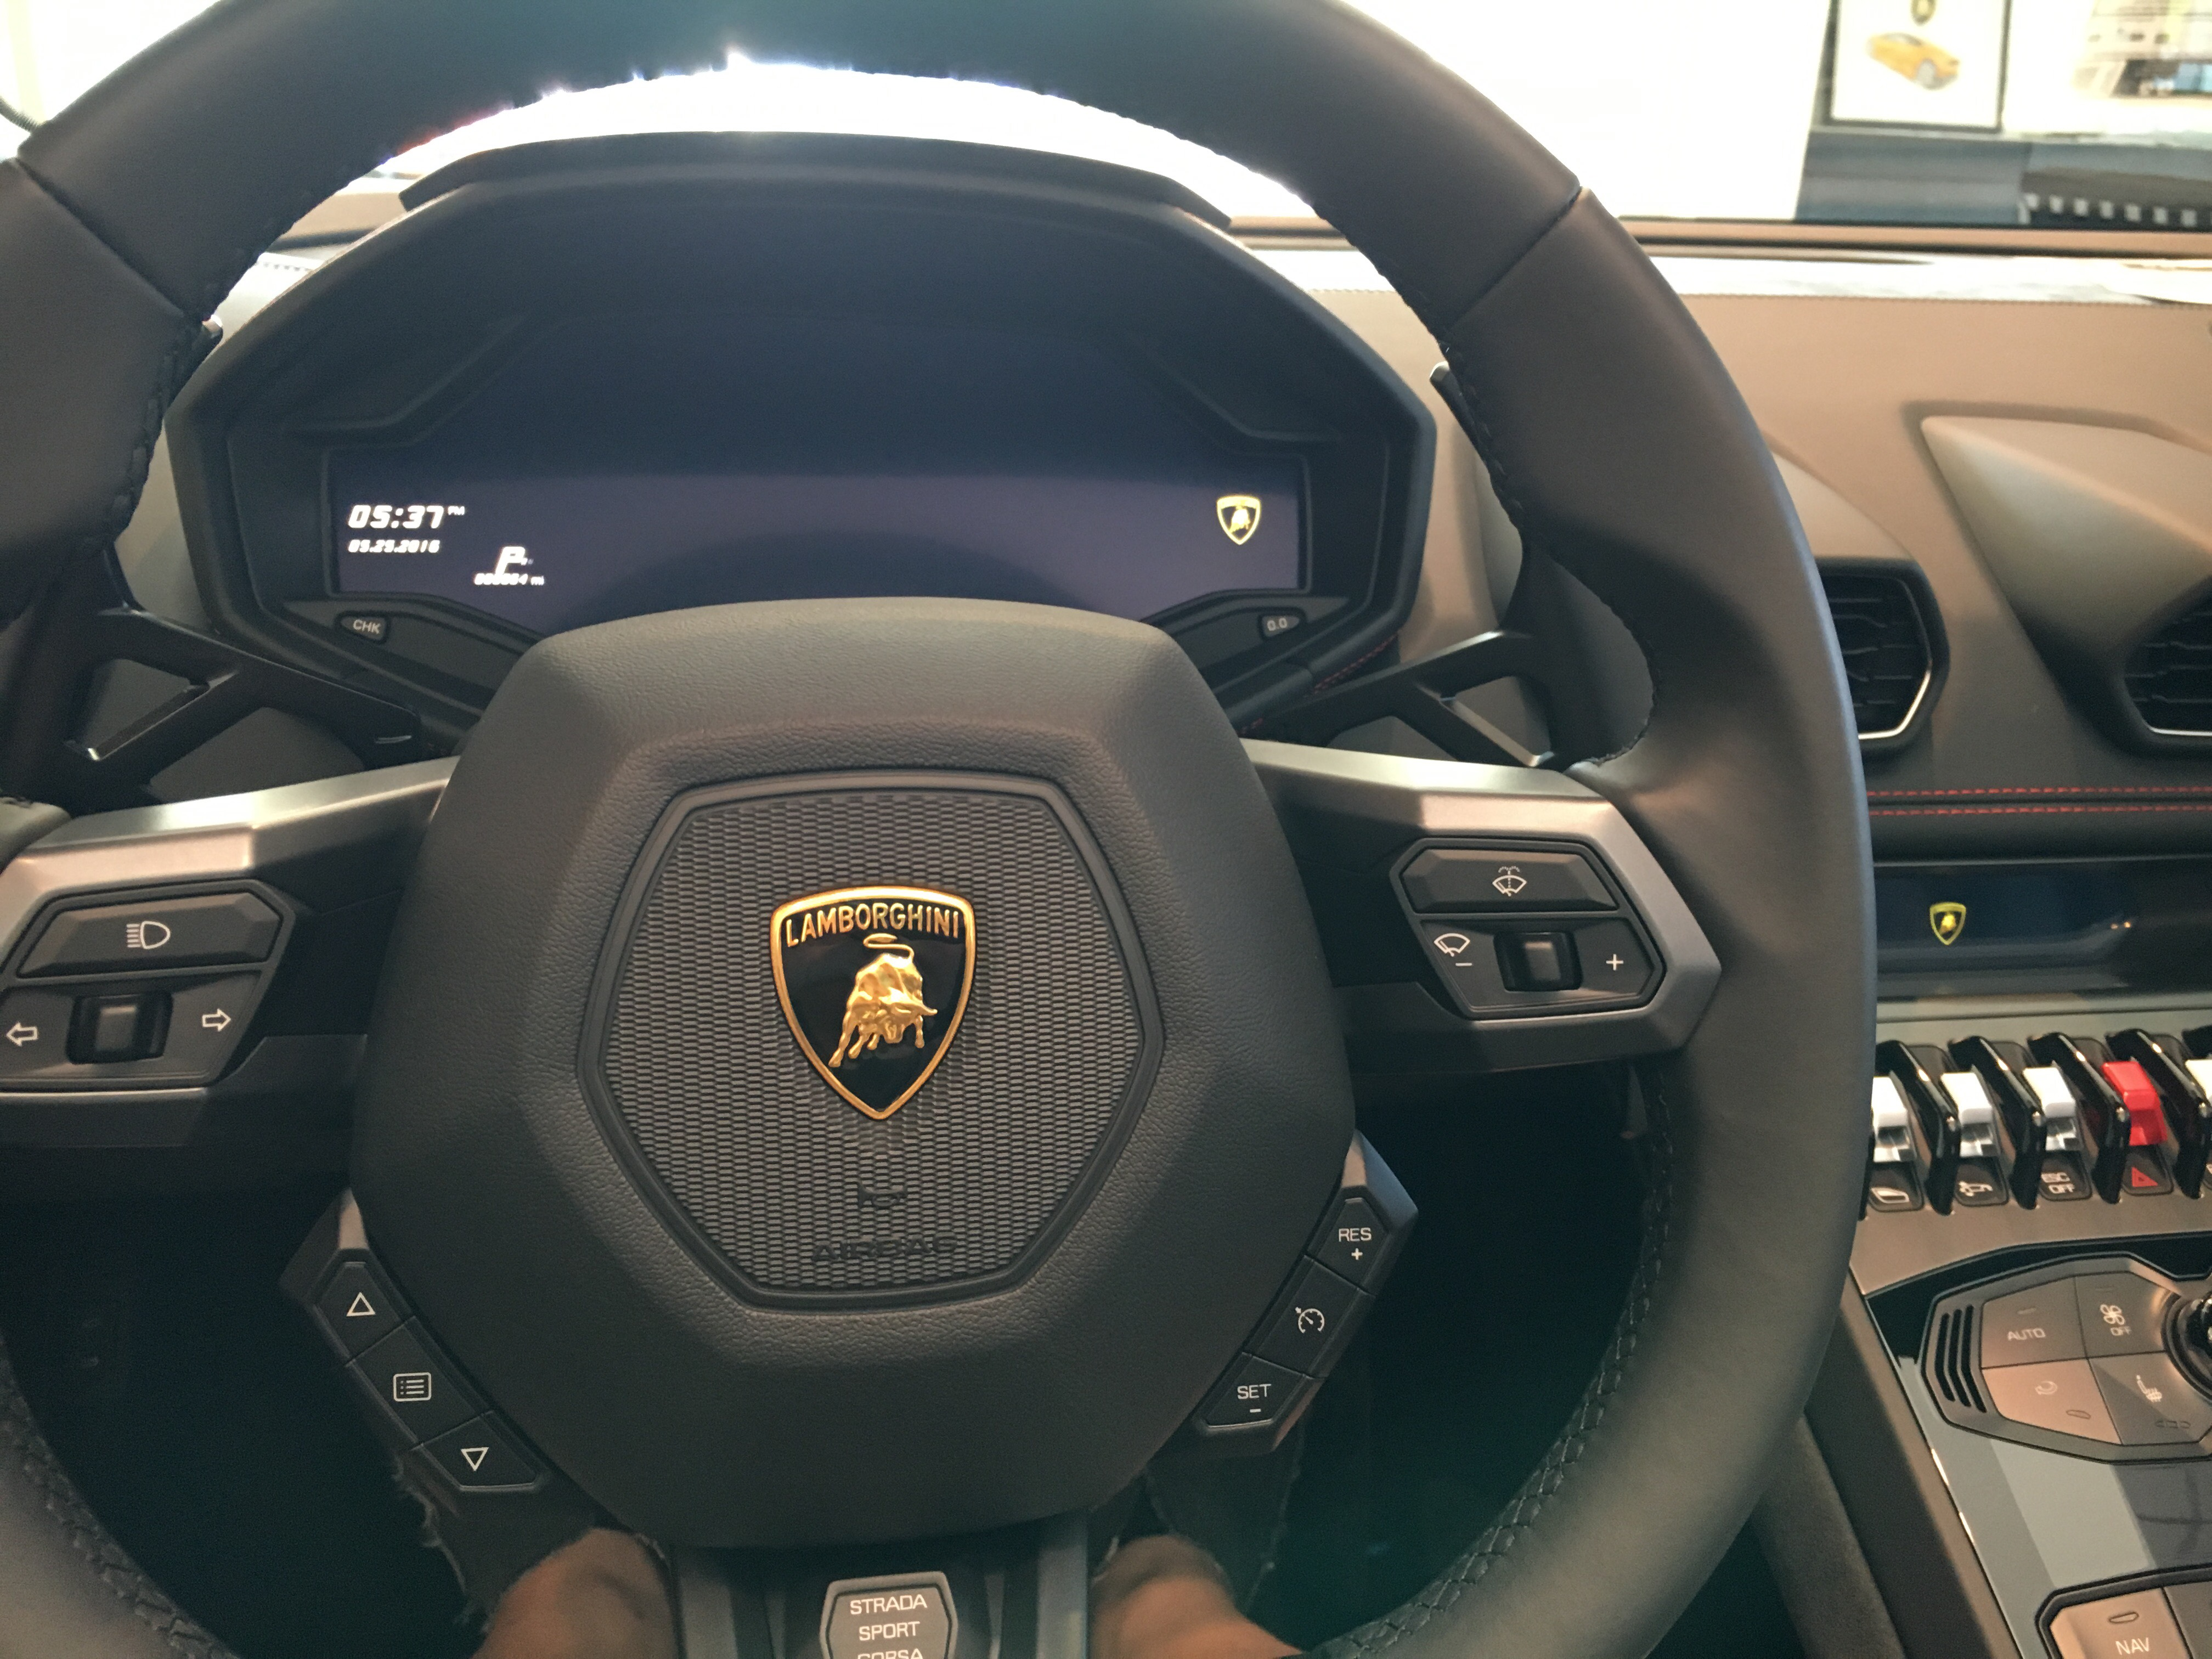 A View From Inside Of The New Lamborghini Hurucan Spyder One Of The